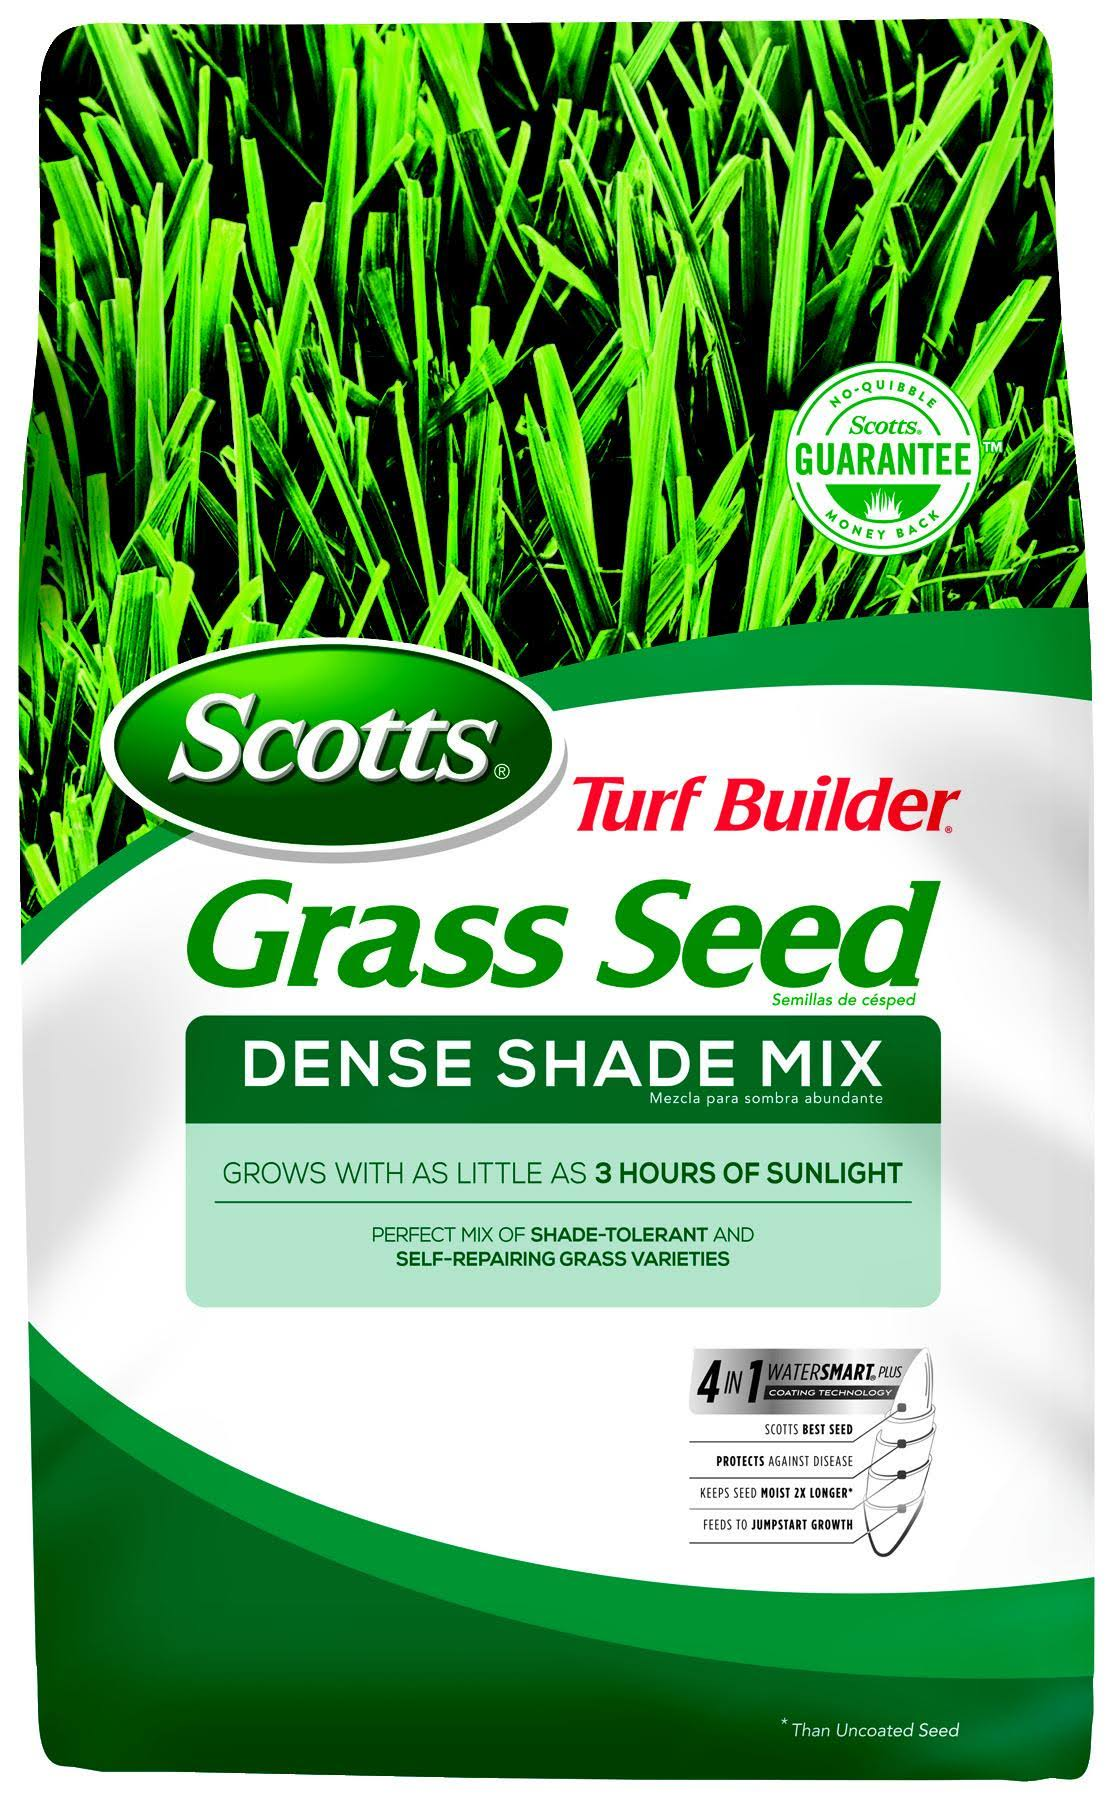 Scotts Turf Builder Dense Shade Mix Grass Seed - 3lb